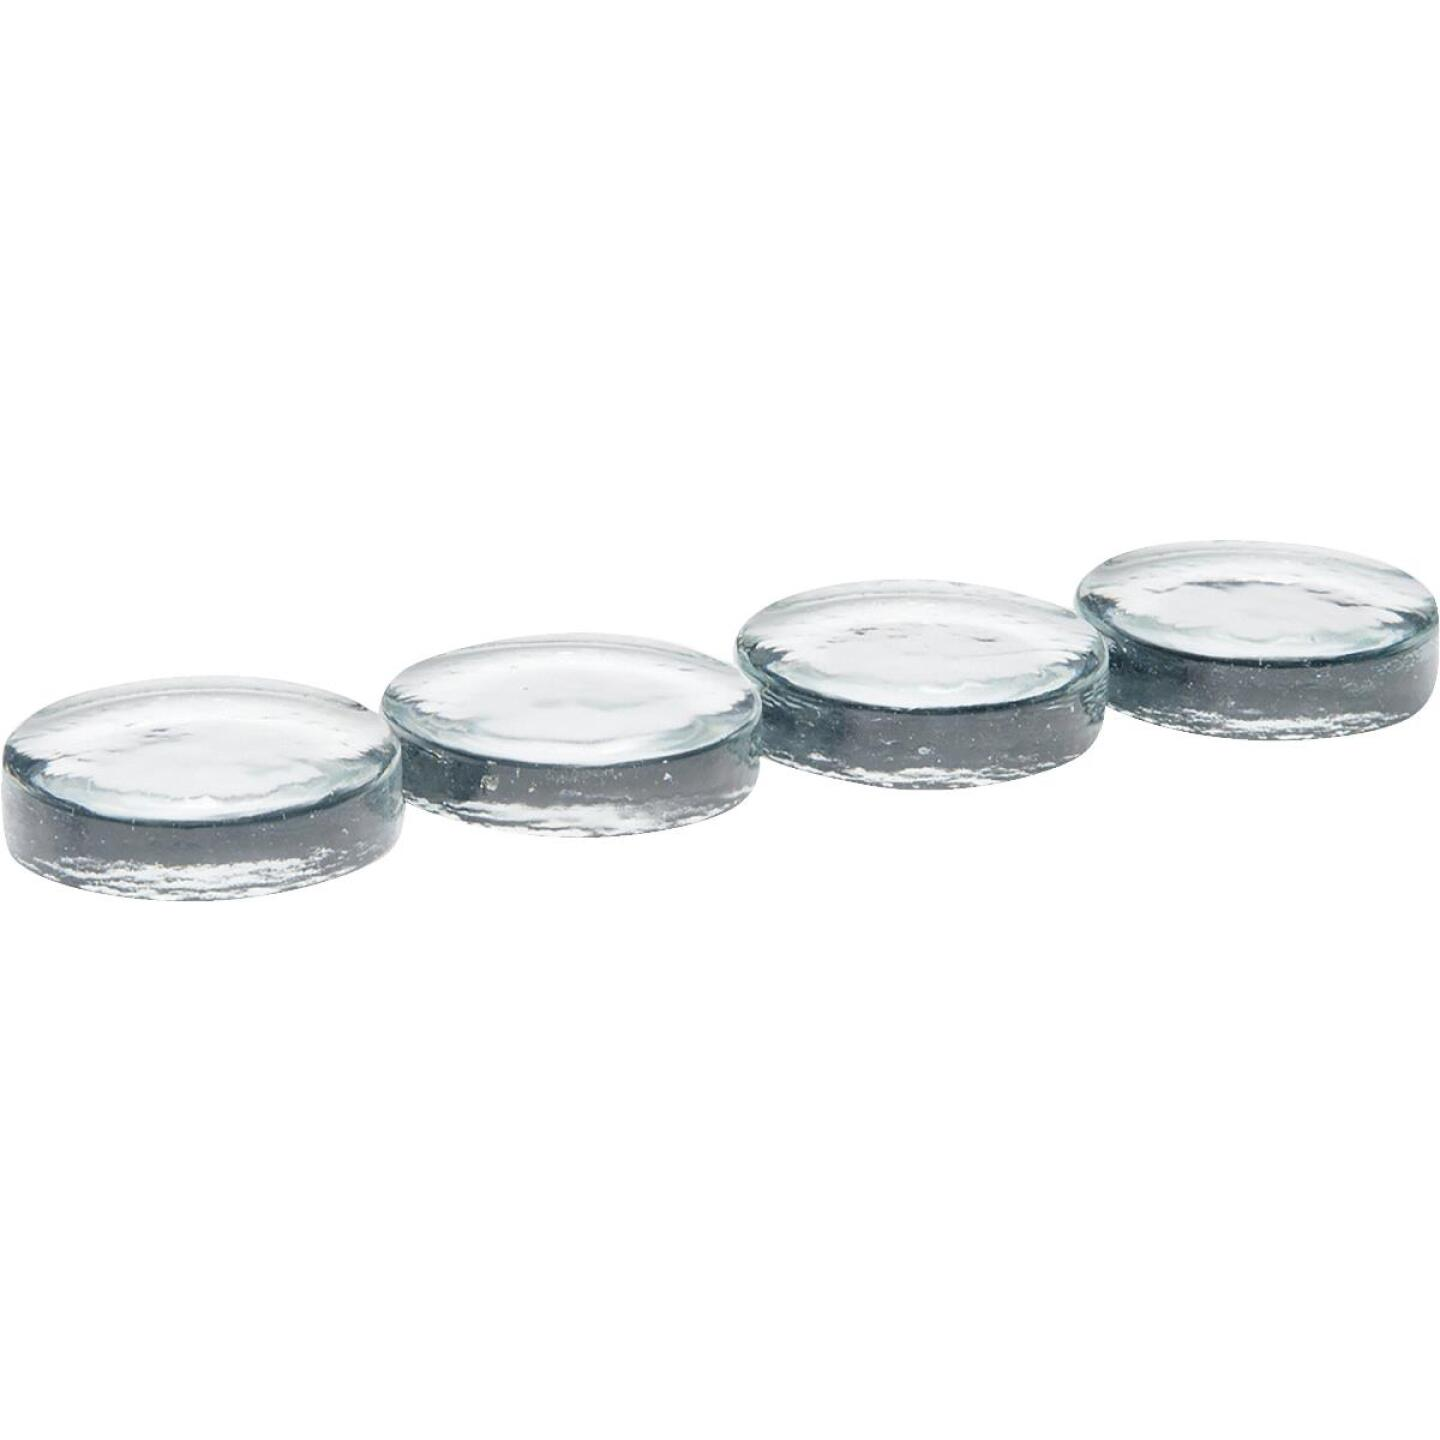 Masontops Pickle Pebbles Canning Weight (4-Pack) Image 1